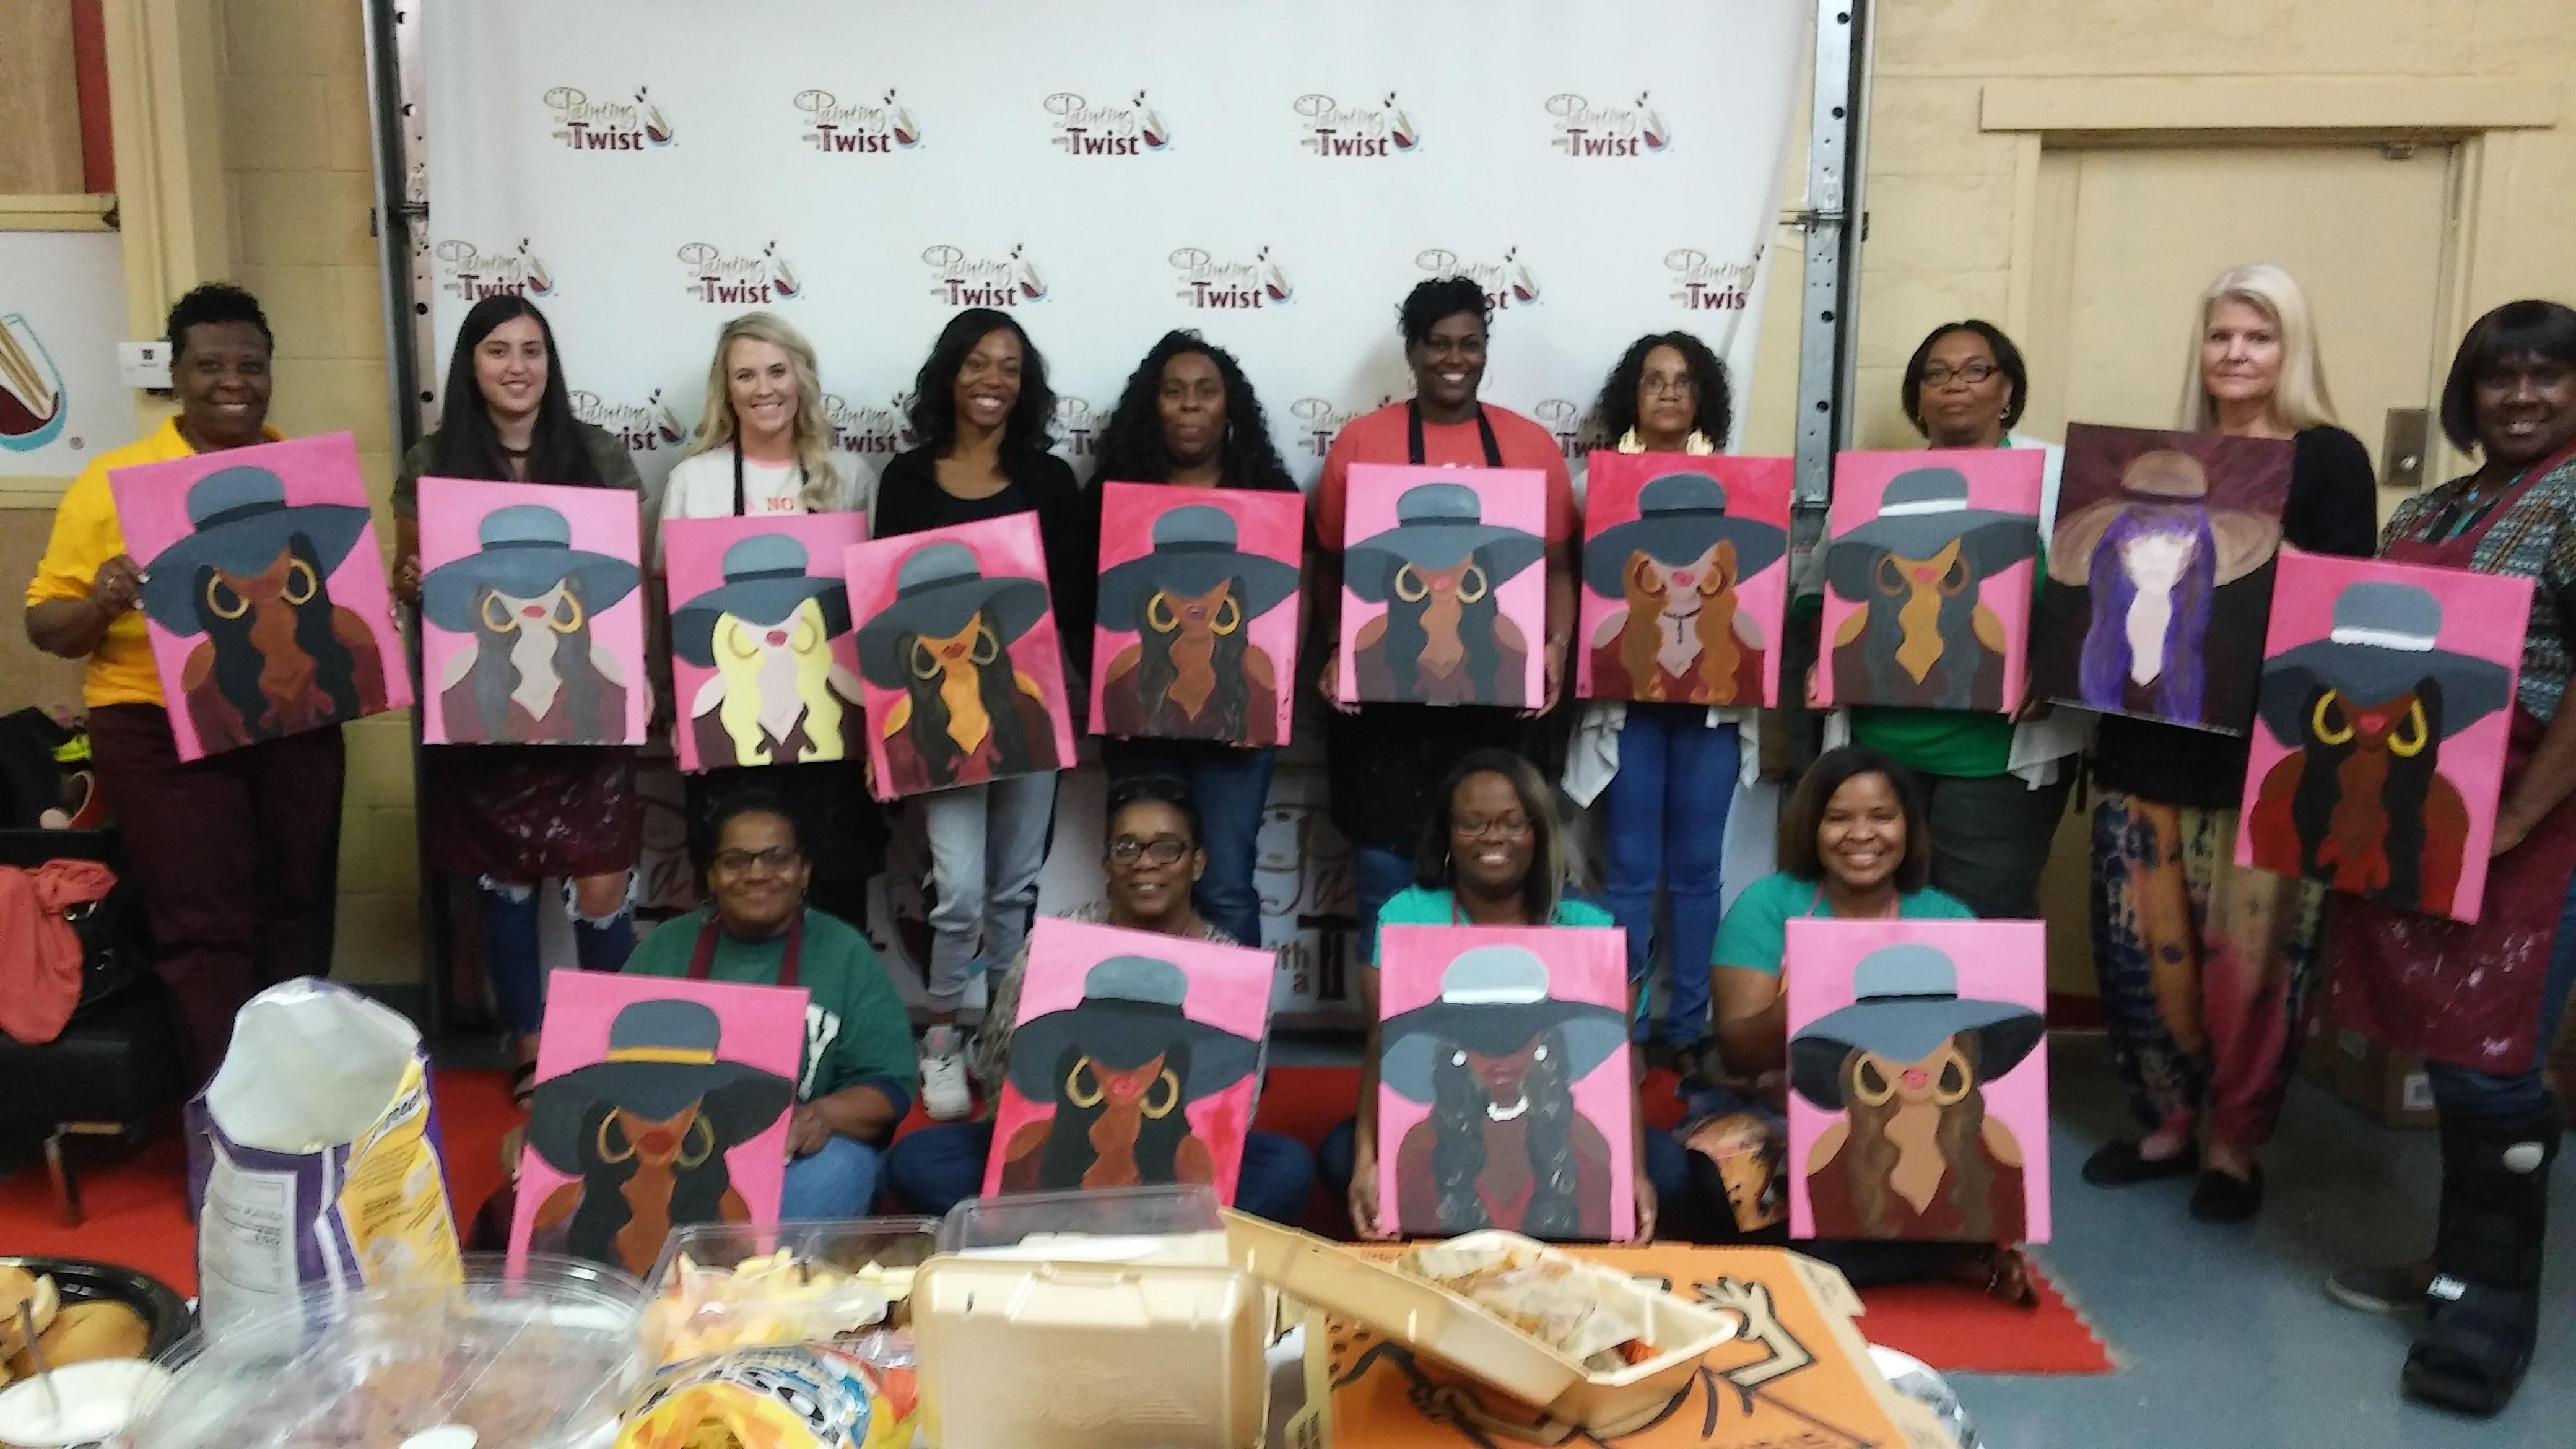 Painting with a twist waco hours for Painting with a twist conroe